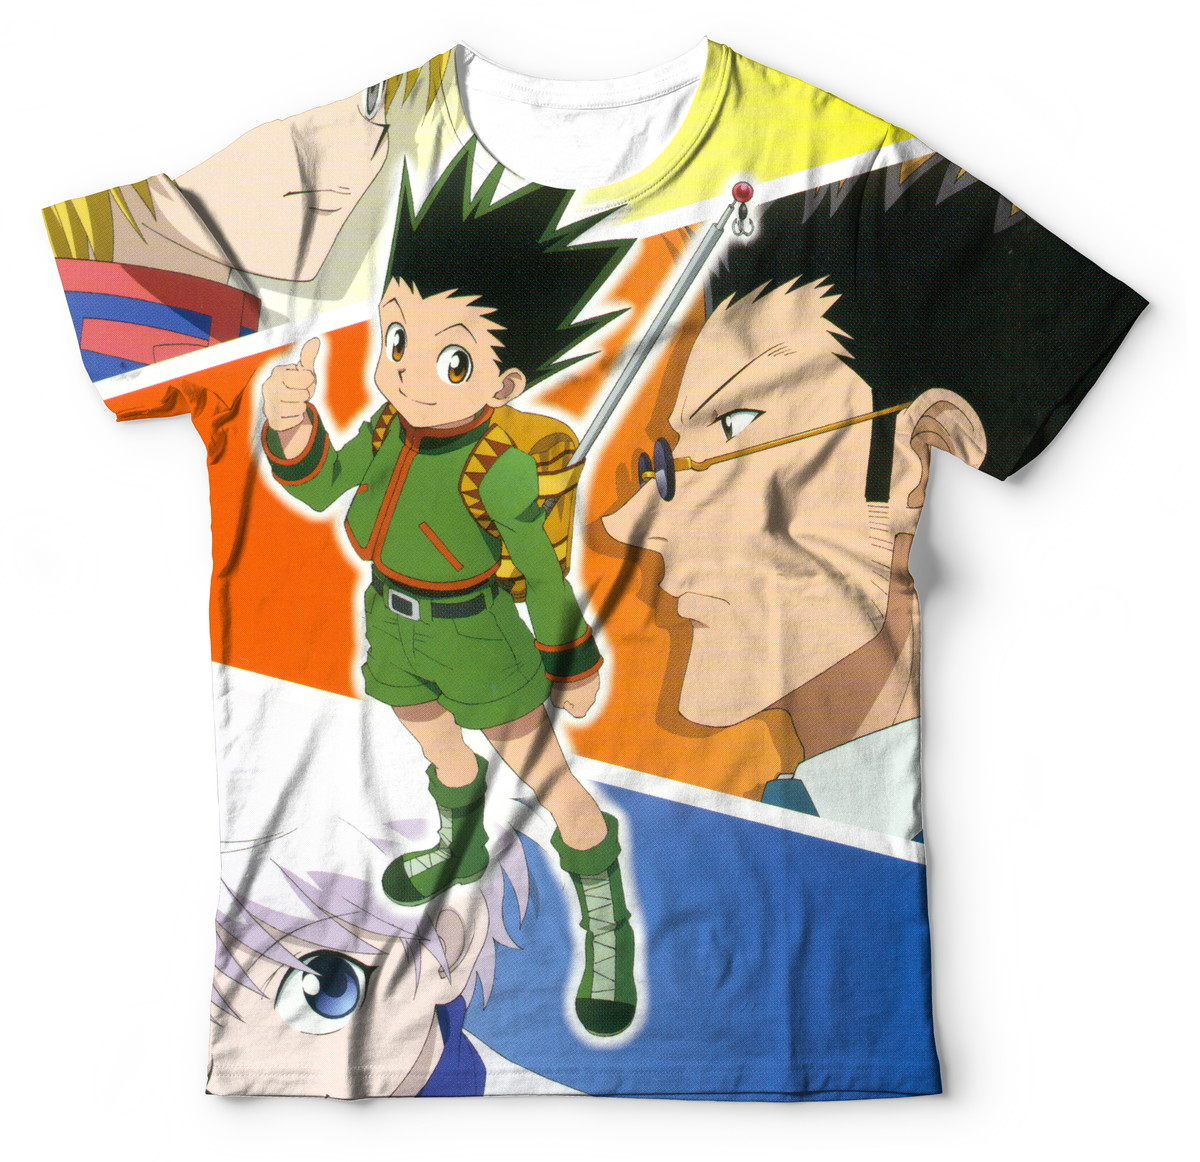 9189b44d276 Camiseta Camisa Blusa Anime Hunter X Hunter - Gon Freecss no Elo7 ...